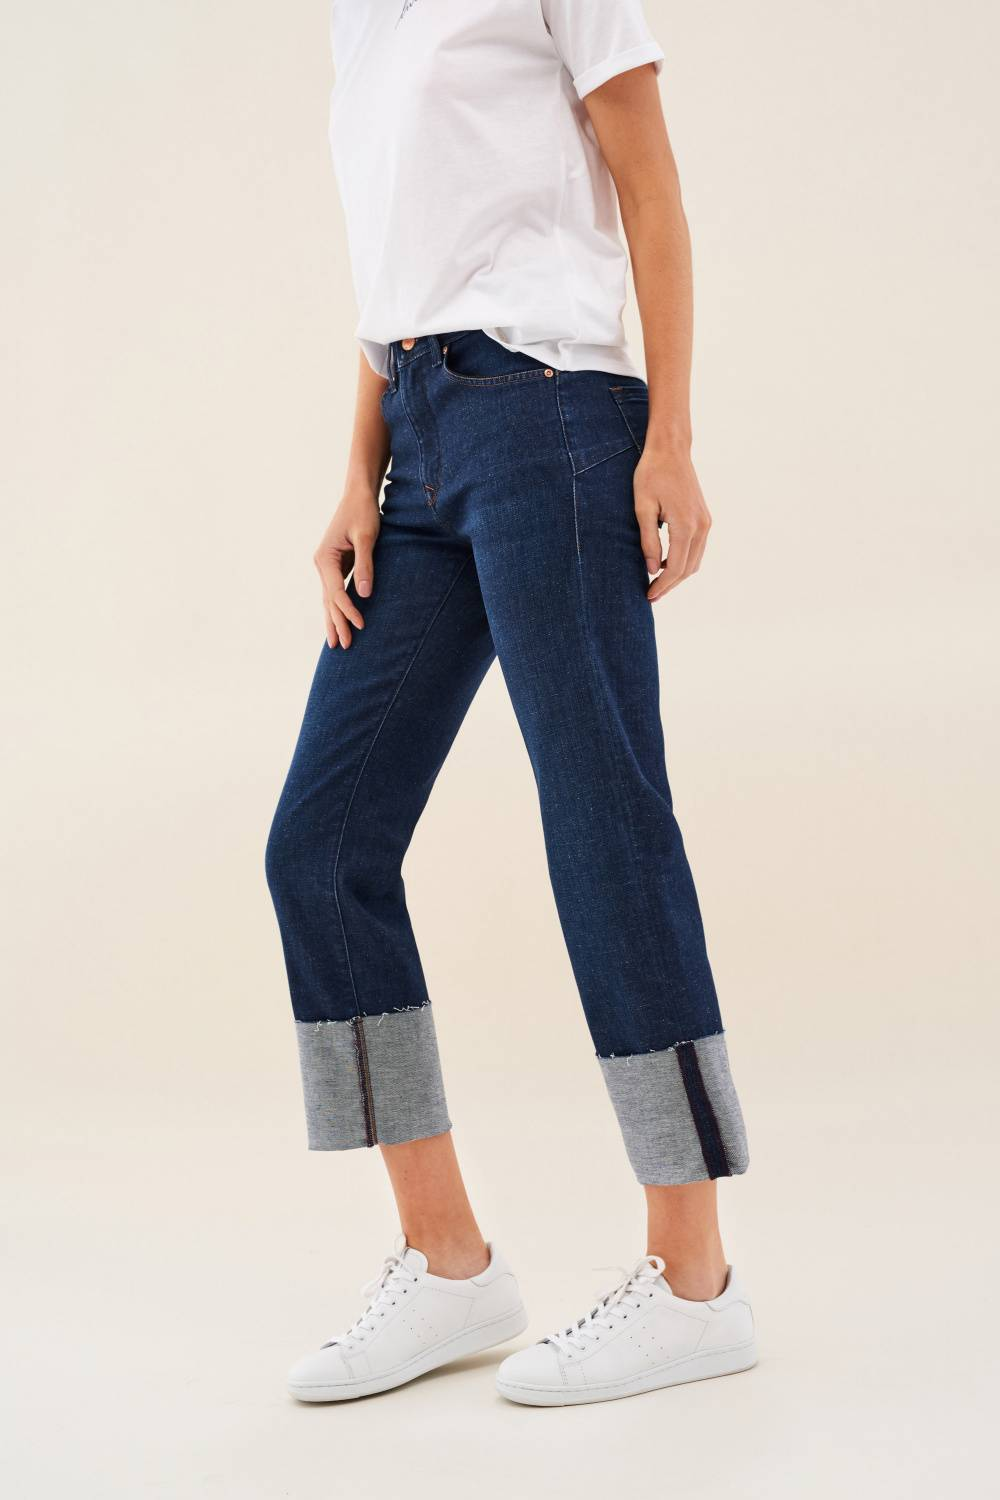 Jeans Secret Glamour, Push In, mit Krempelsaum - Salsa